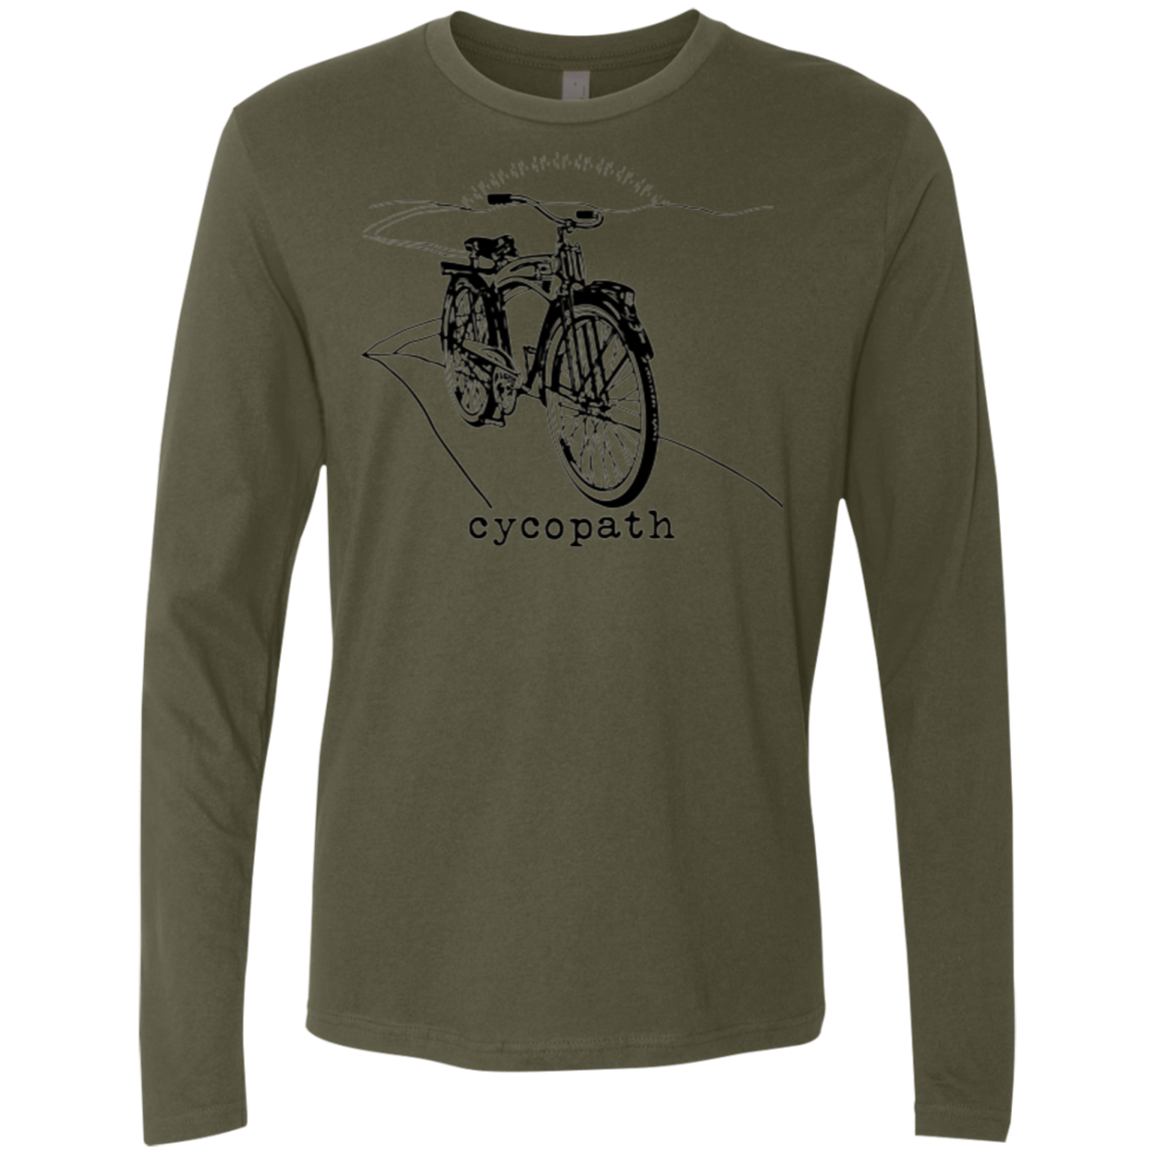 Cycopath Men's Long Sleeve Tee - Trendy Tees